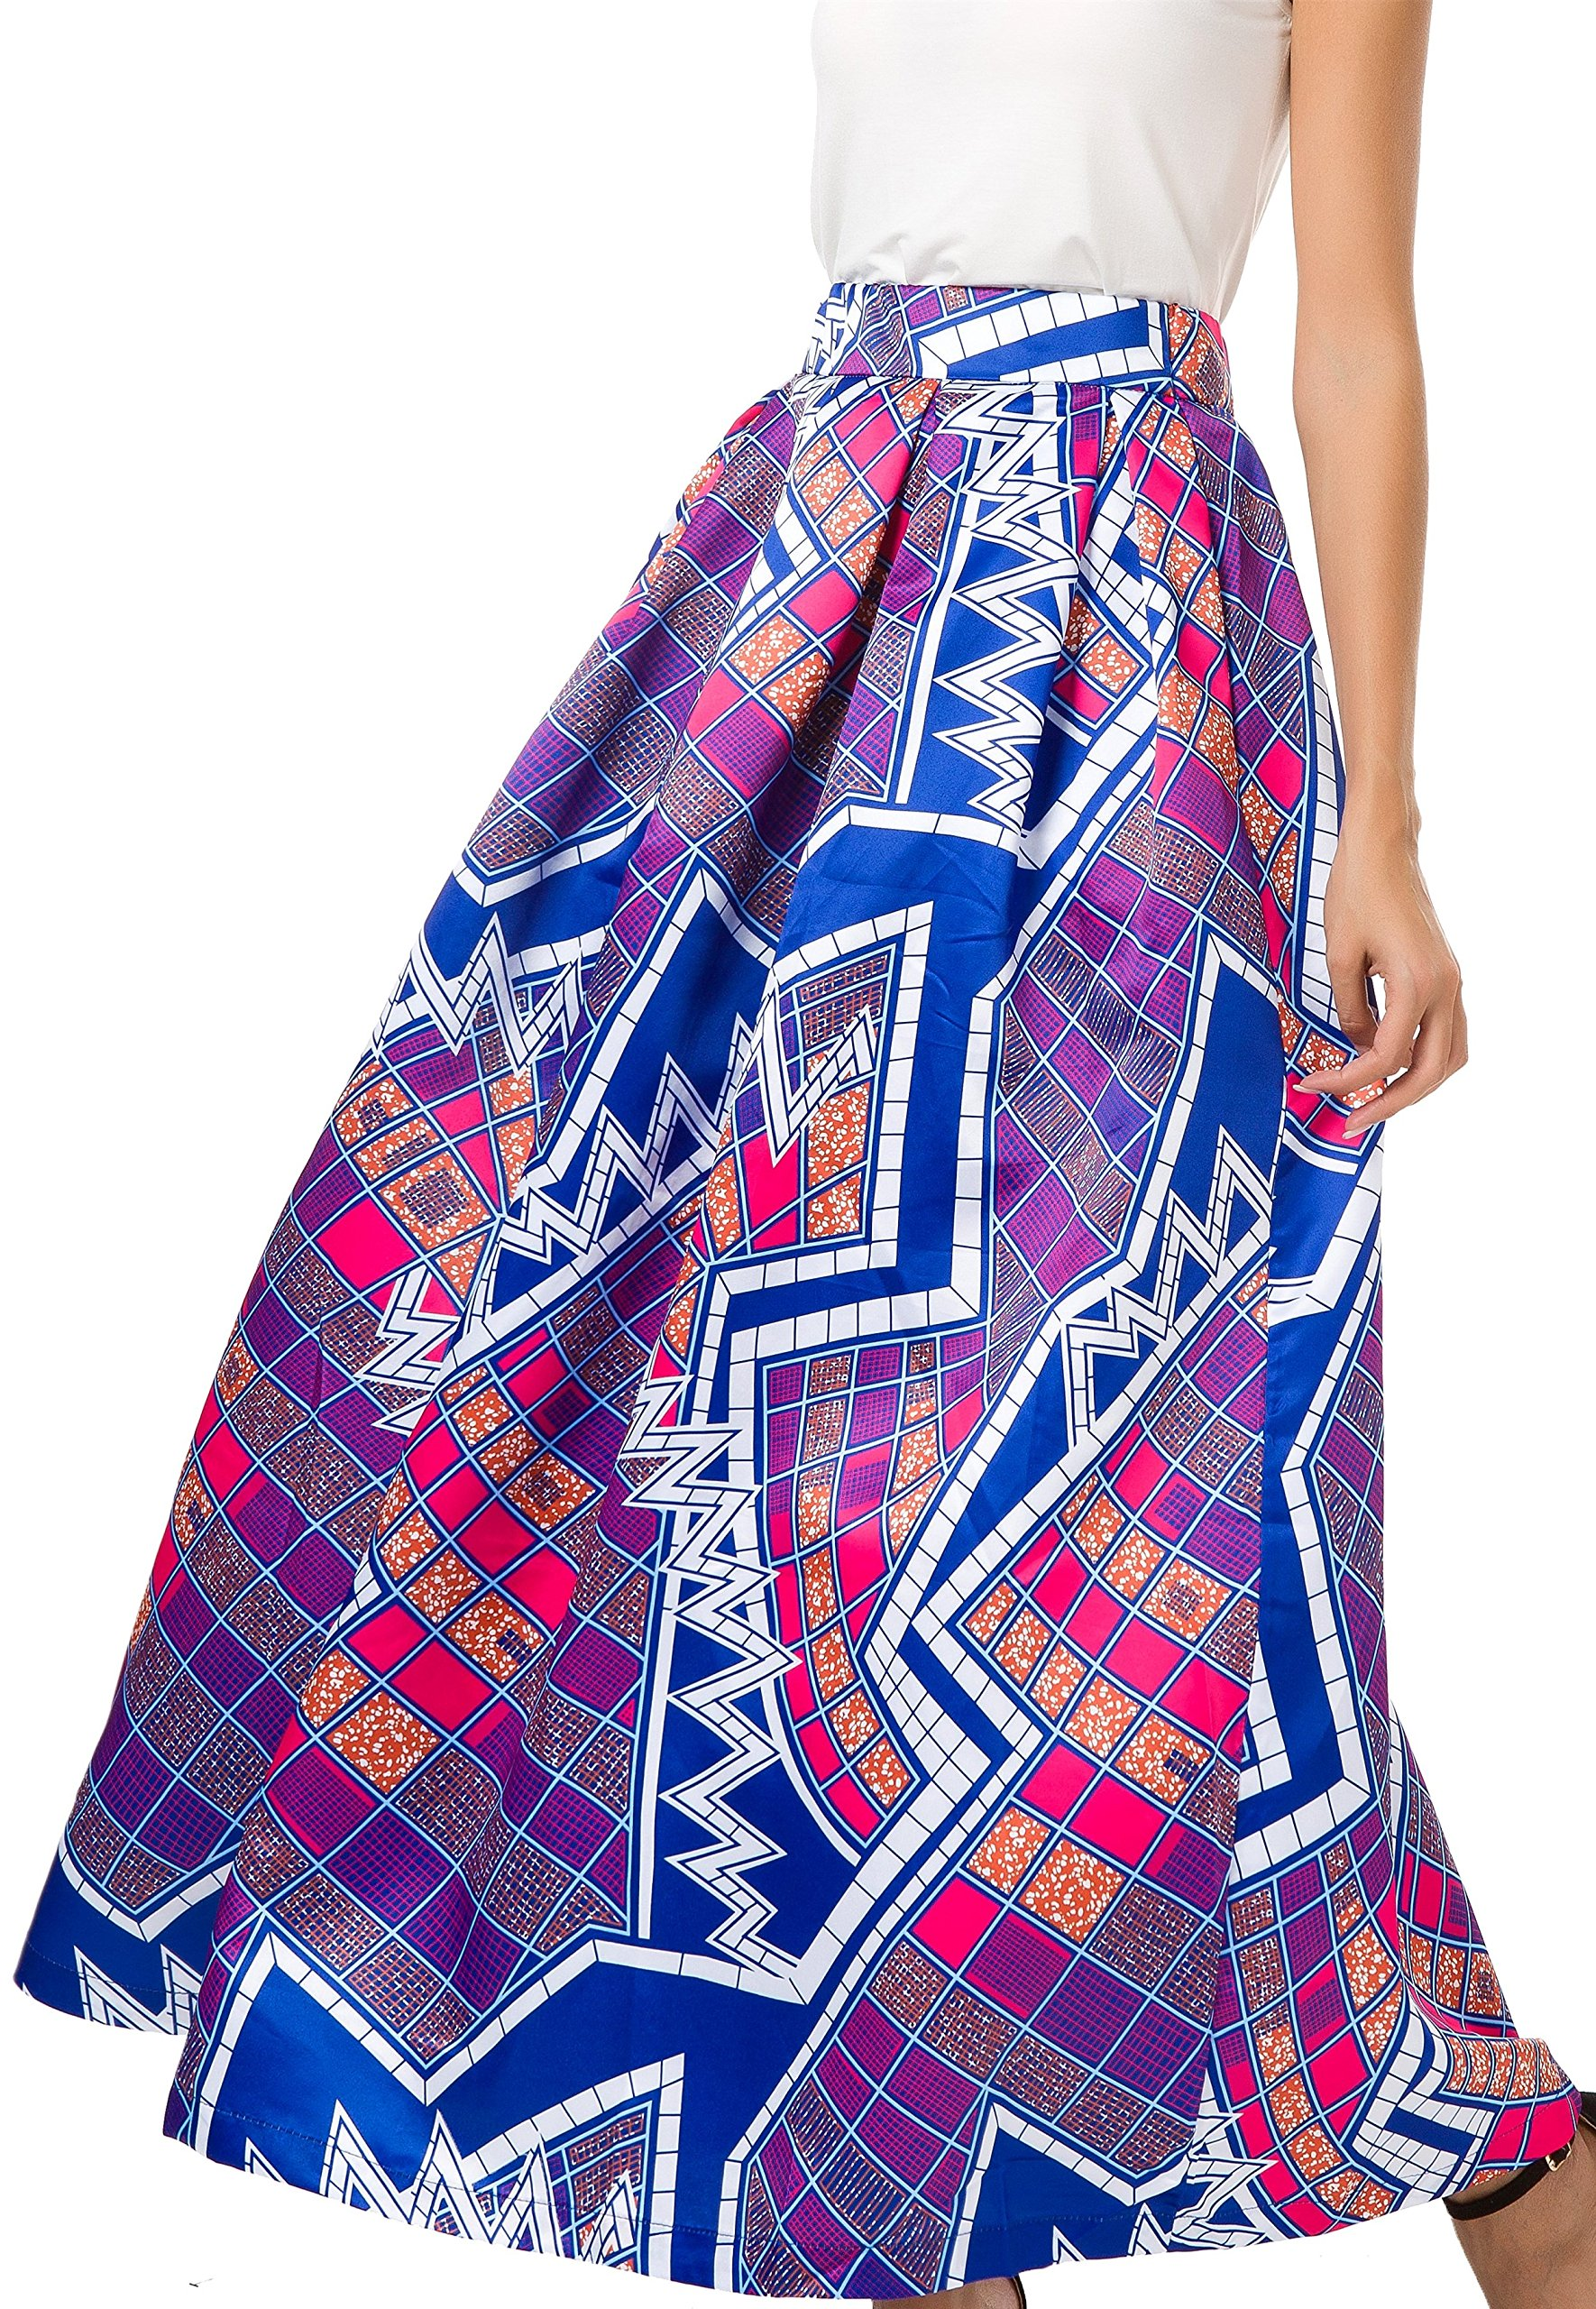 NINEWE Women's High Waist Flared Skirt Pleated Floral Skirt with Pocket Purple Geometric 12